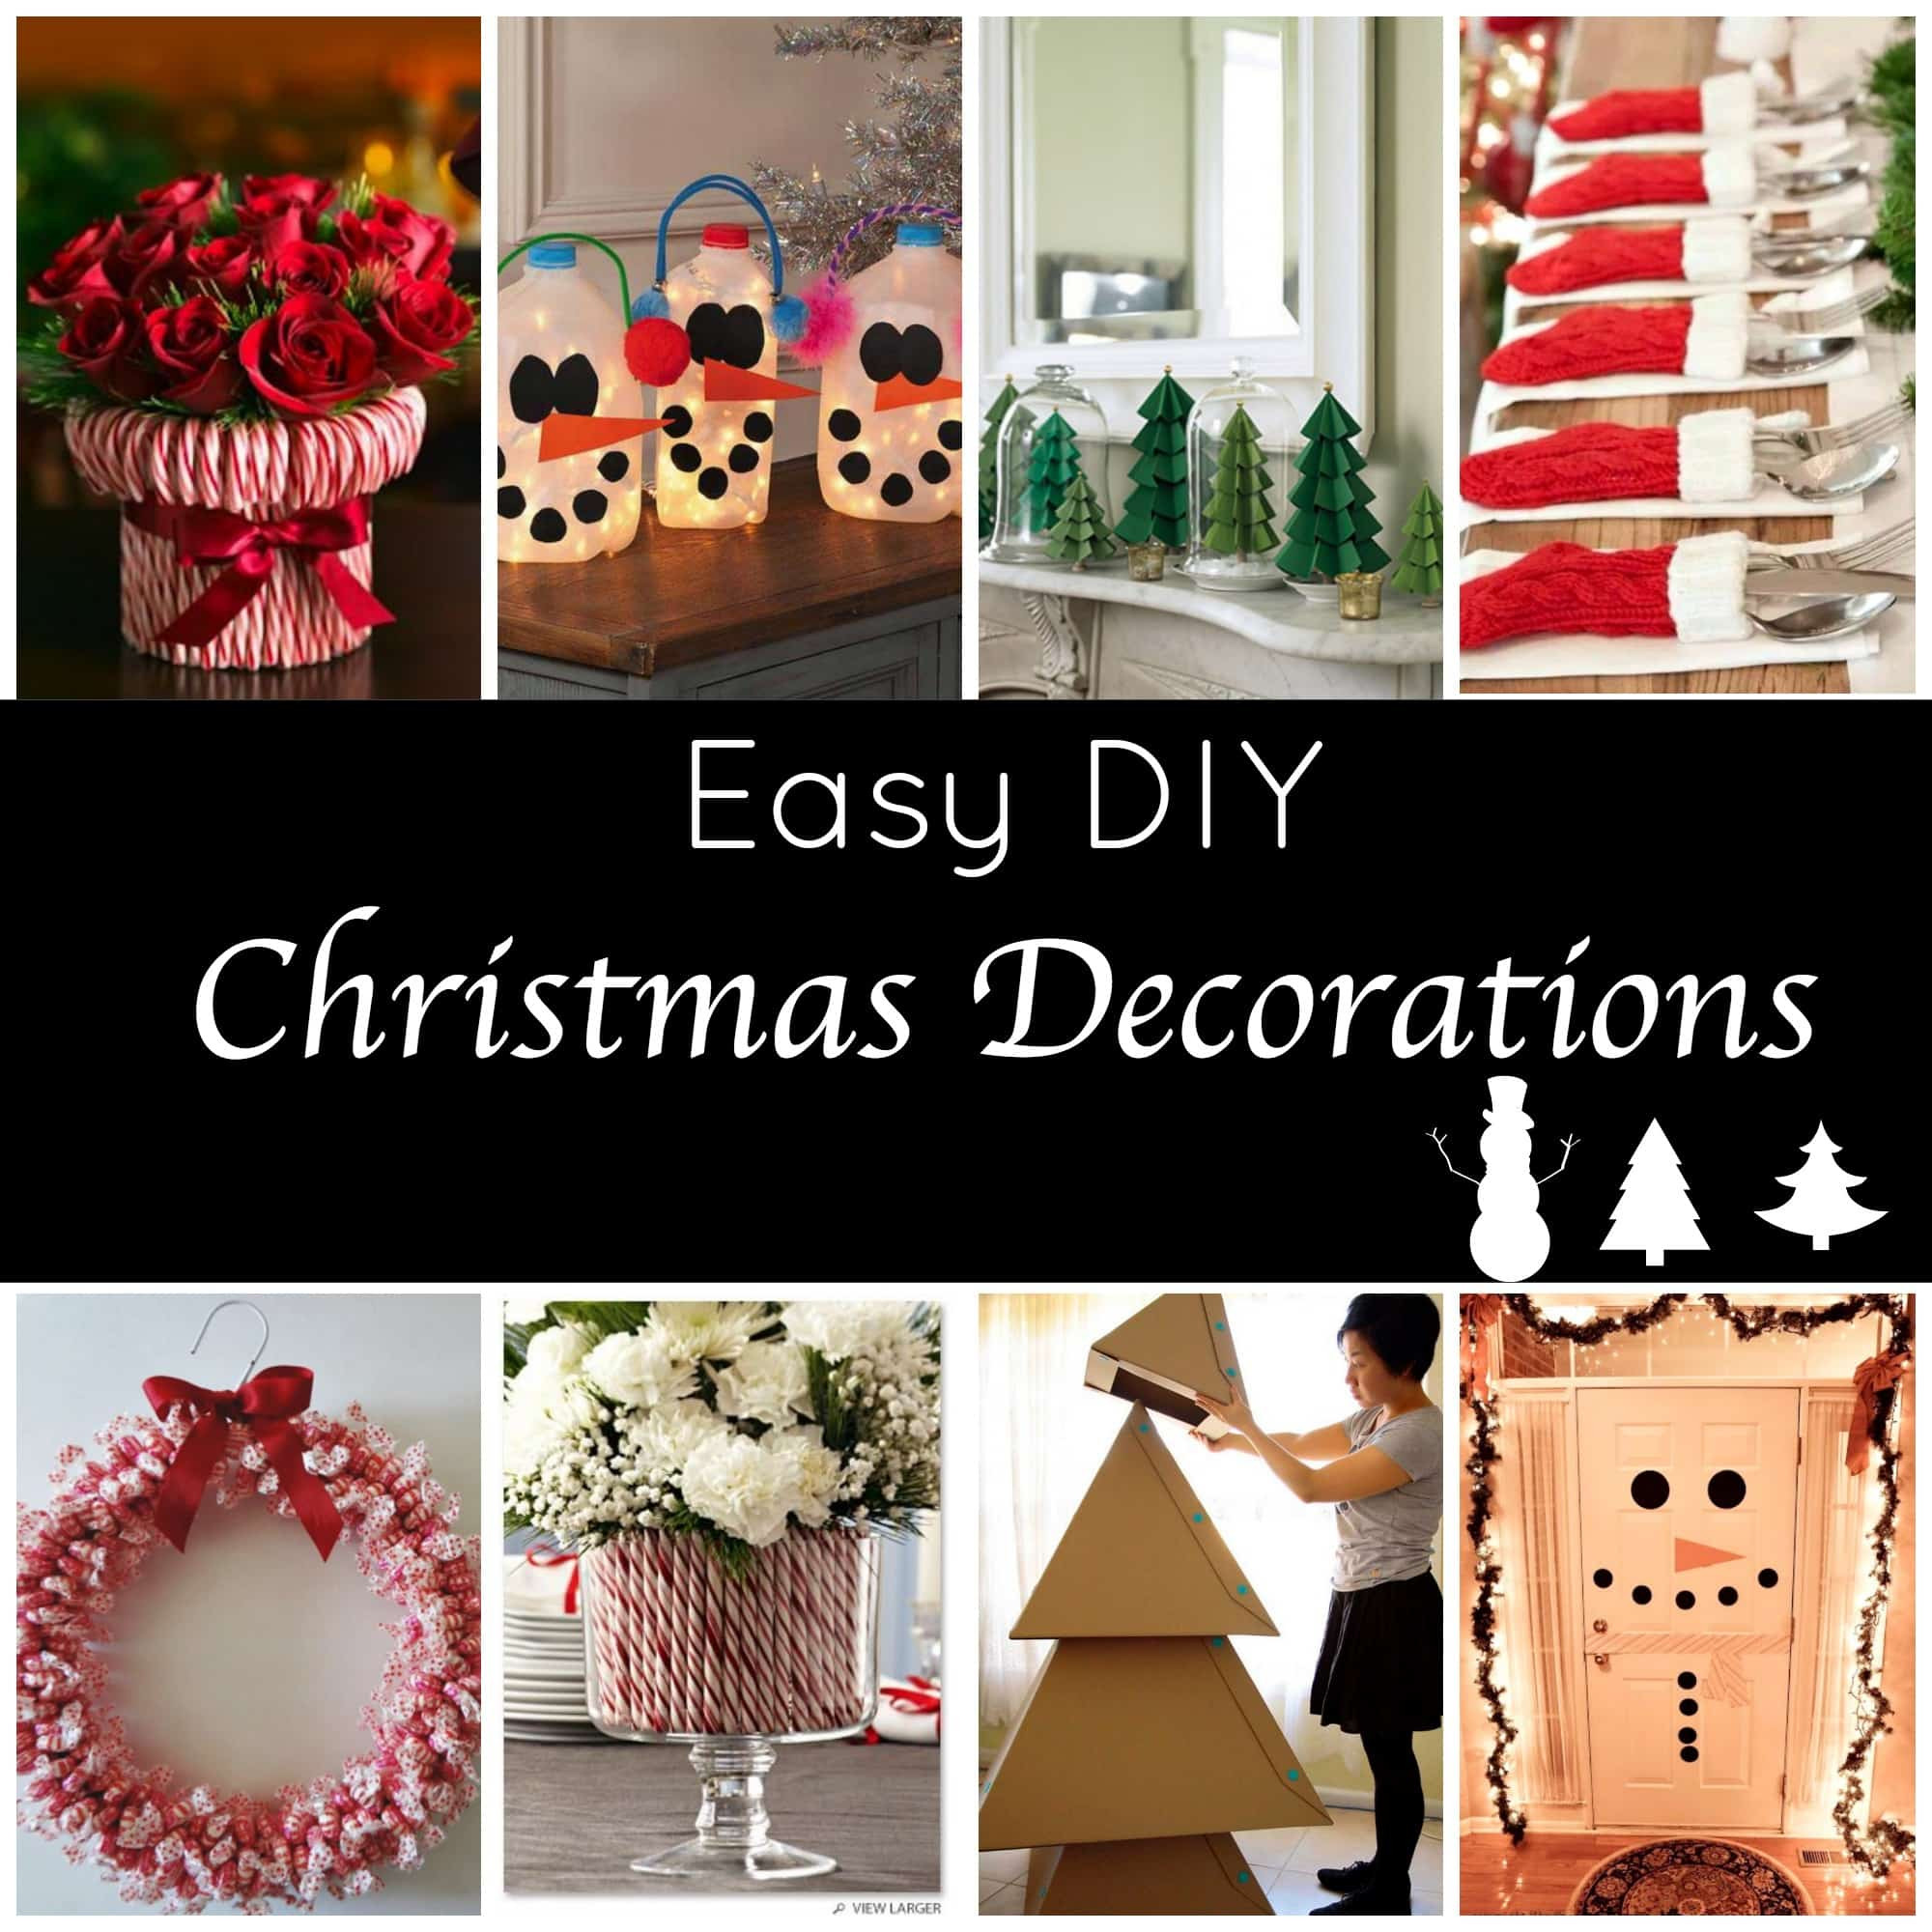 Cute DIY Christmas Decorations  Cute & Easy Holiday Decorations Page 2 of 2 Princess